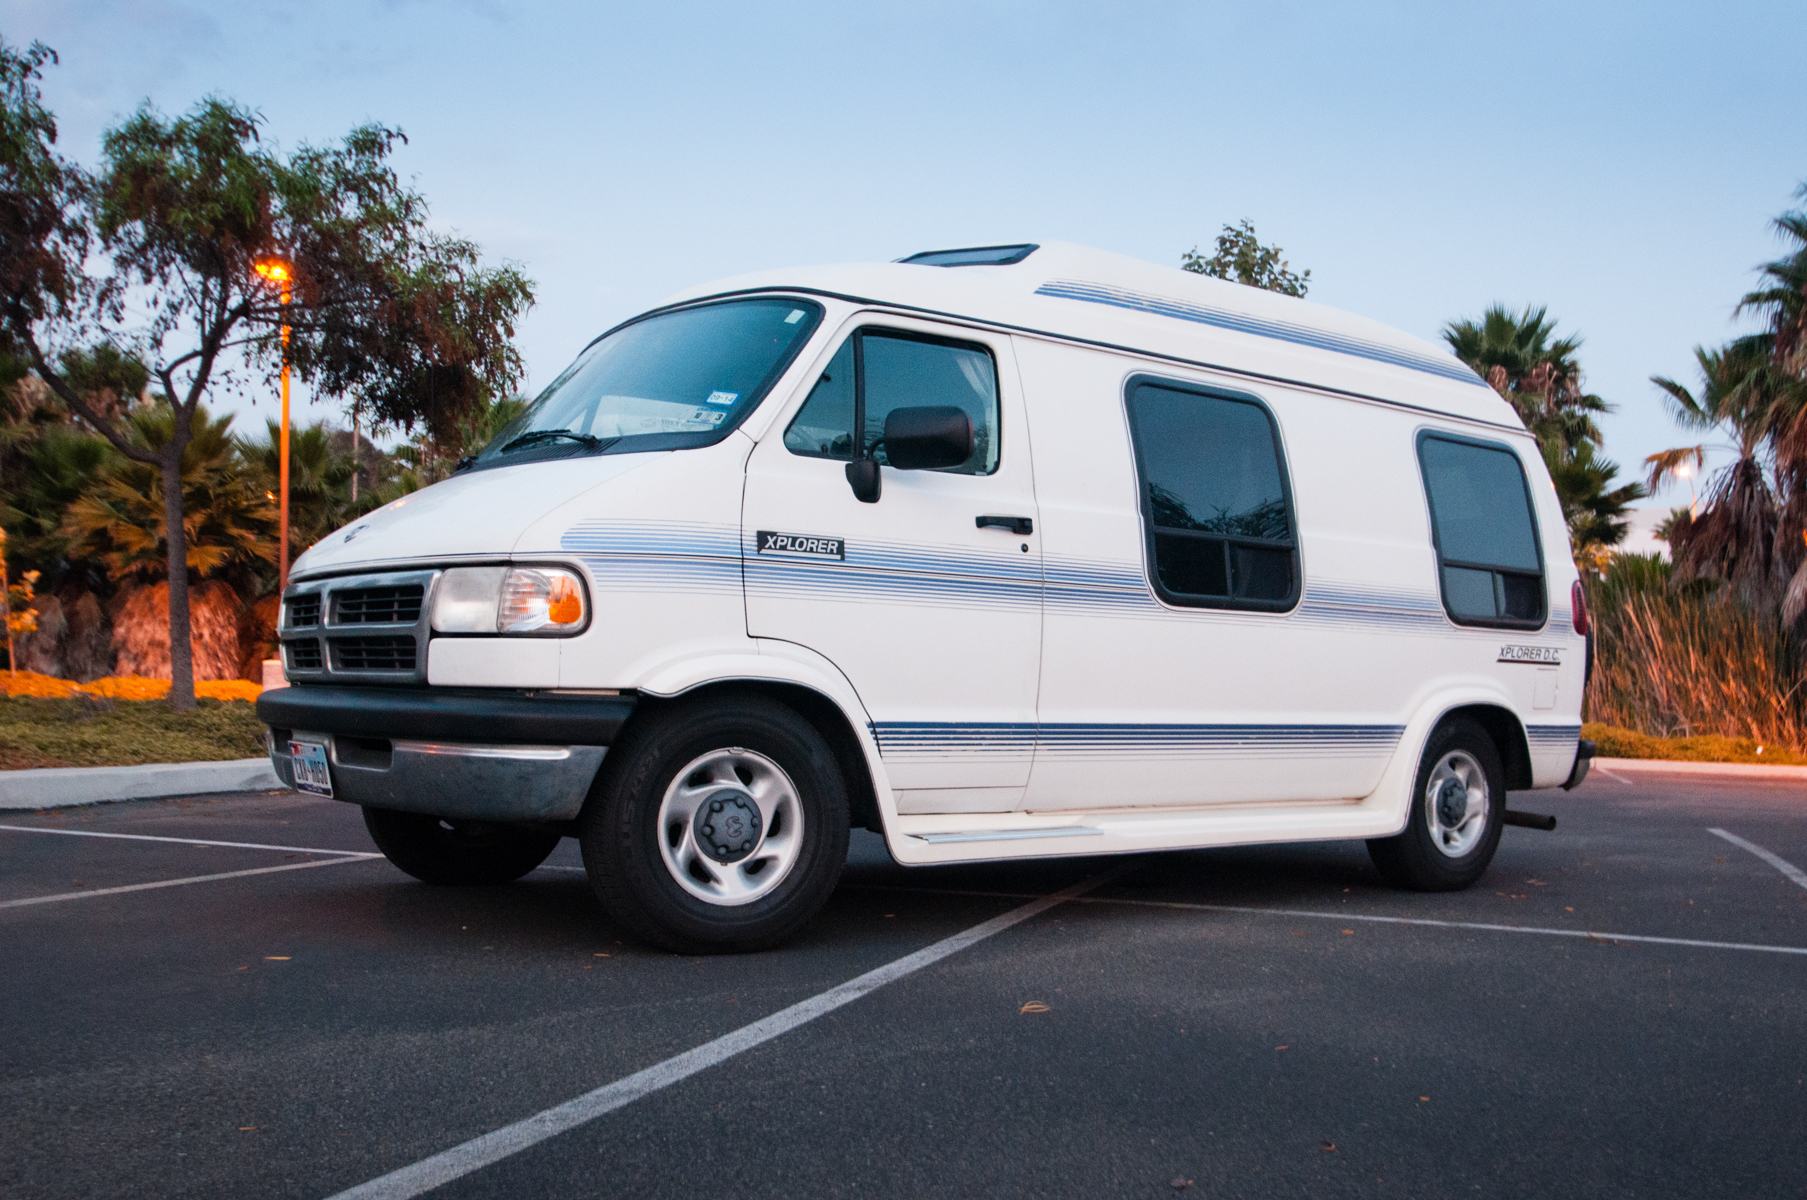 The van right after I received it from my grandma and before making any modifications